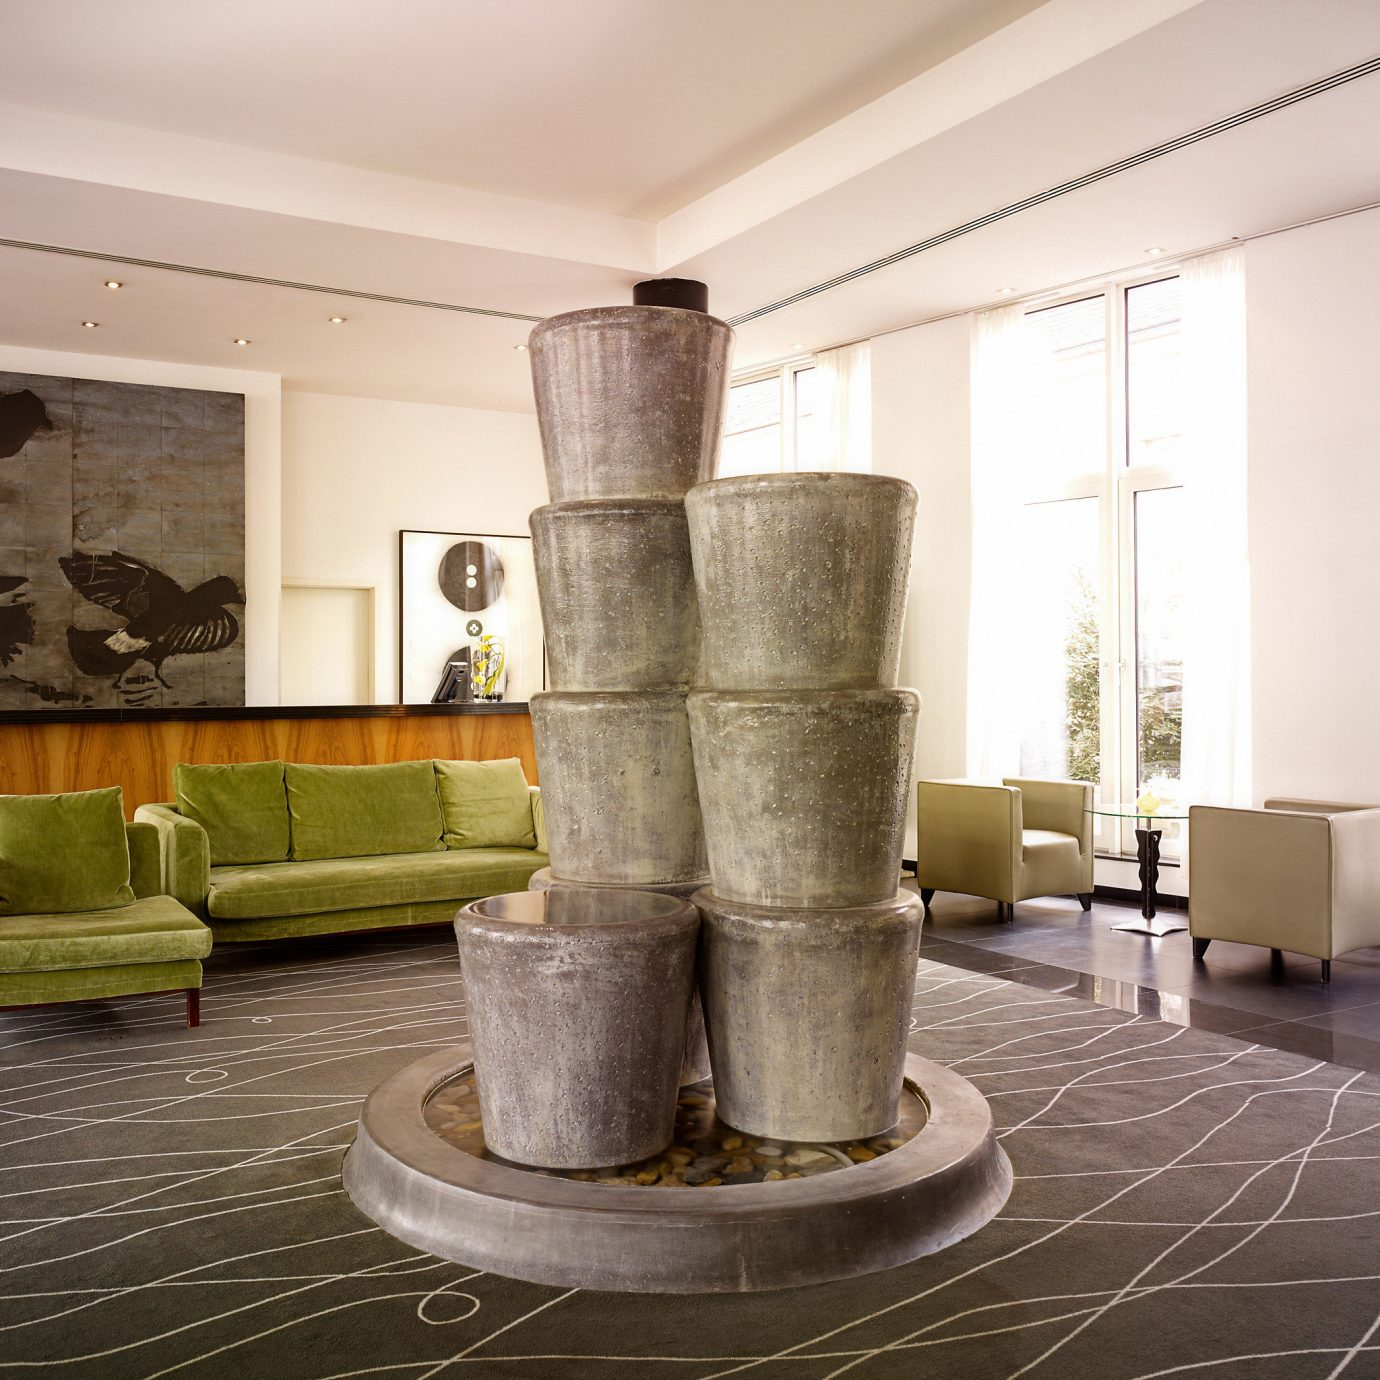 City Lobby Lounge Modern structure property column living room lighting flooring home tourist attraction